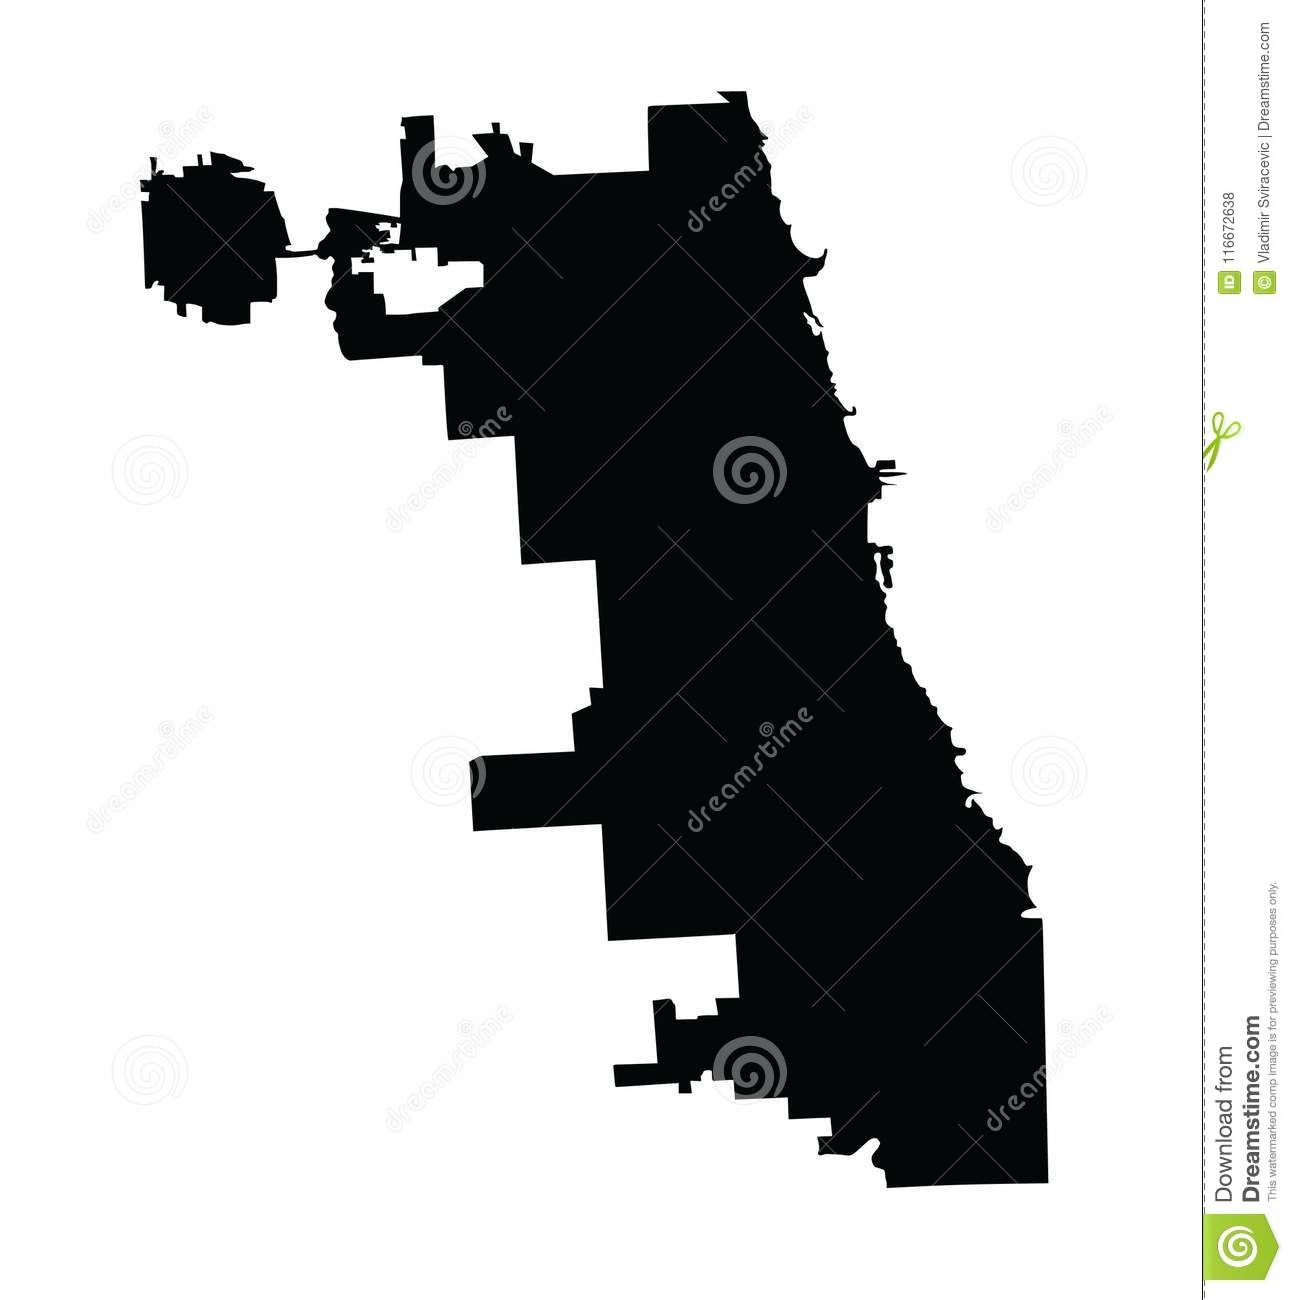 Map Of America Showing Chicago.Chicago City Map Silhouette Vector Map Illinois State City Chicago